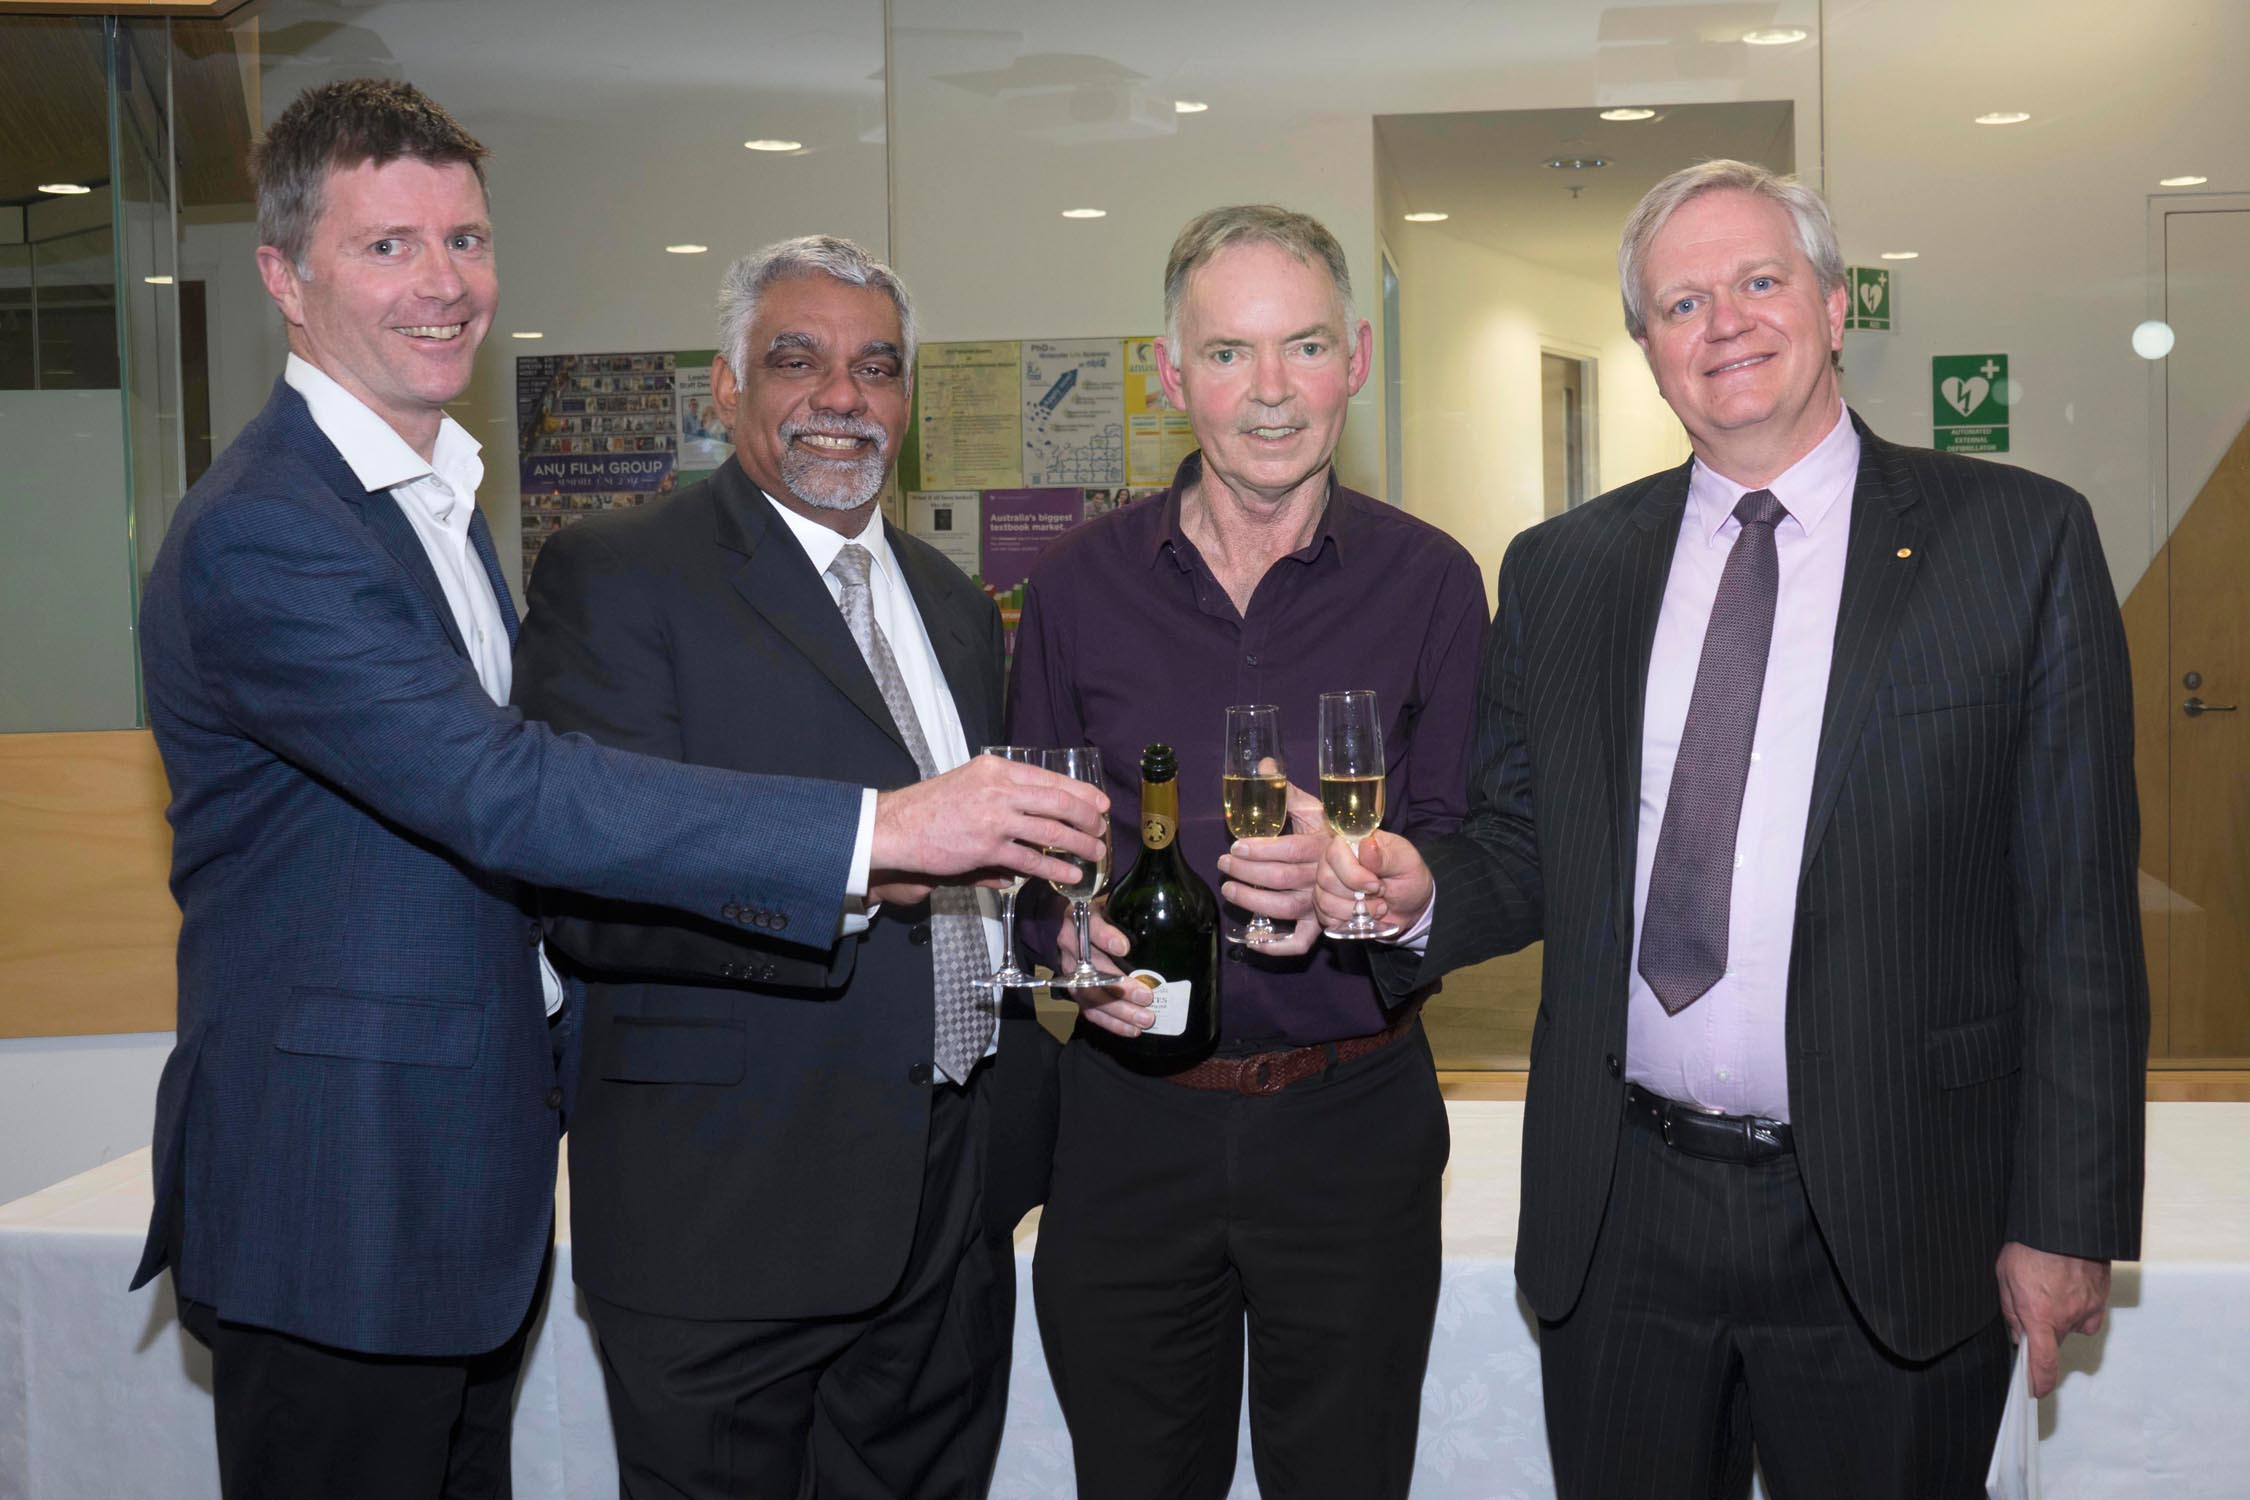 Professor Owen Atkin, RSB Director Allen Rodrigo, Professor Graham Farquhar, and ANU Vice-Chancellor Professor Brian Schmidt toast Graham's achievement